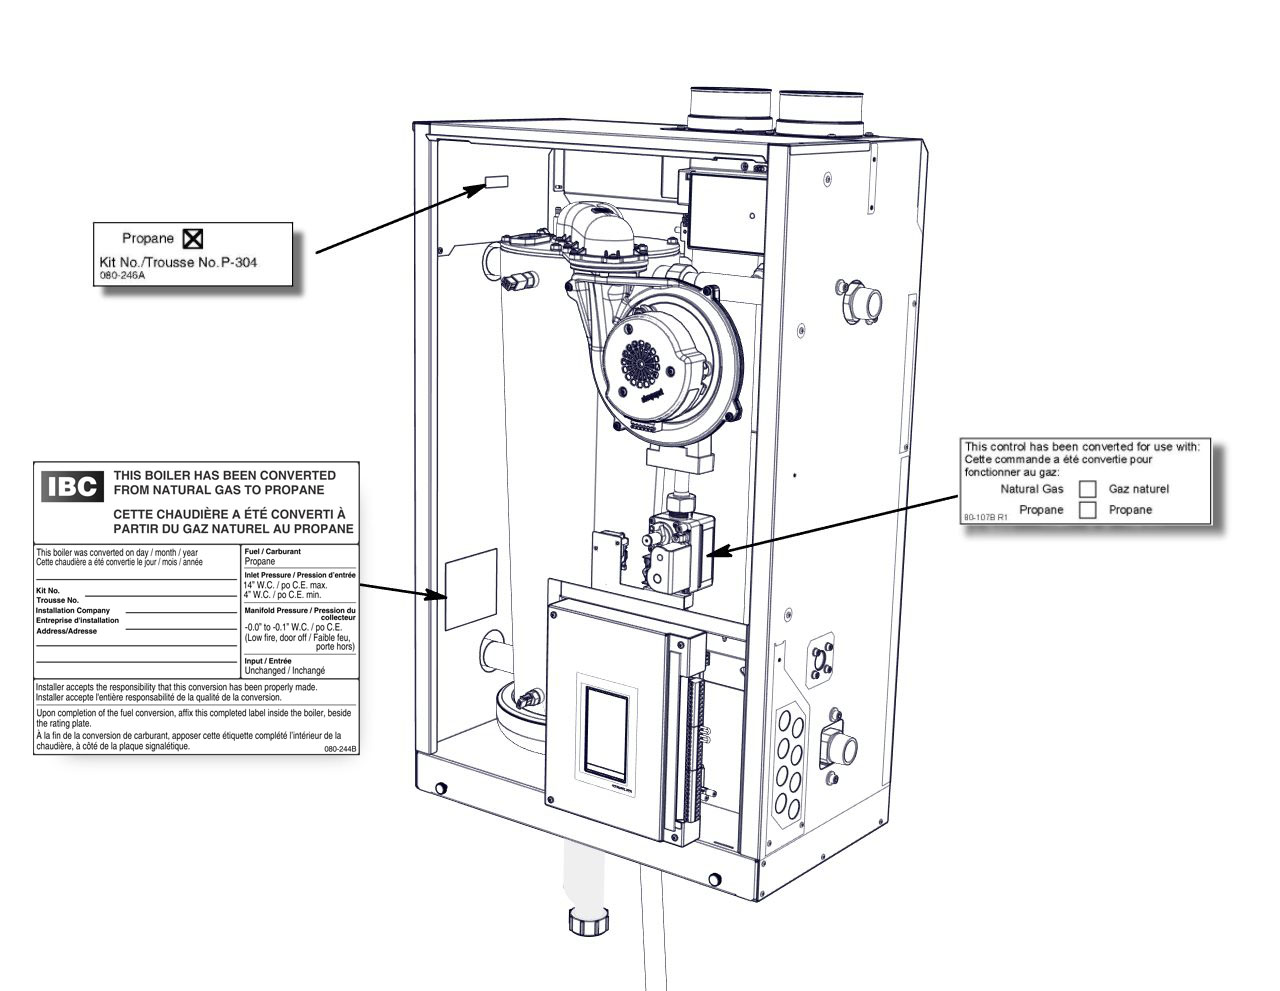 installing the boilers concept drawings ibc better boilers ibc sl rh dbmovies us Home Boiler Wiring Gas Boiler Wiring